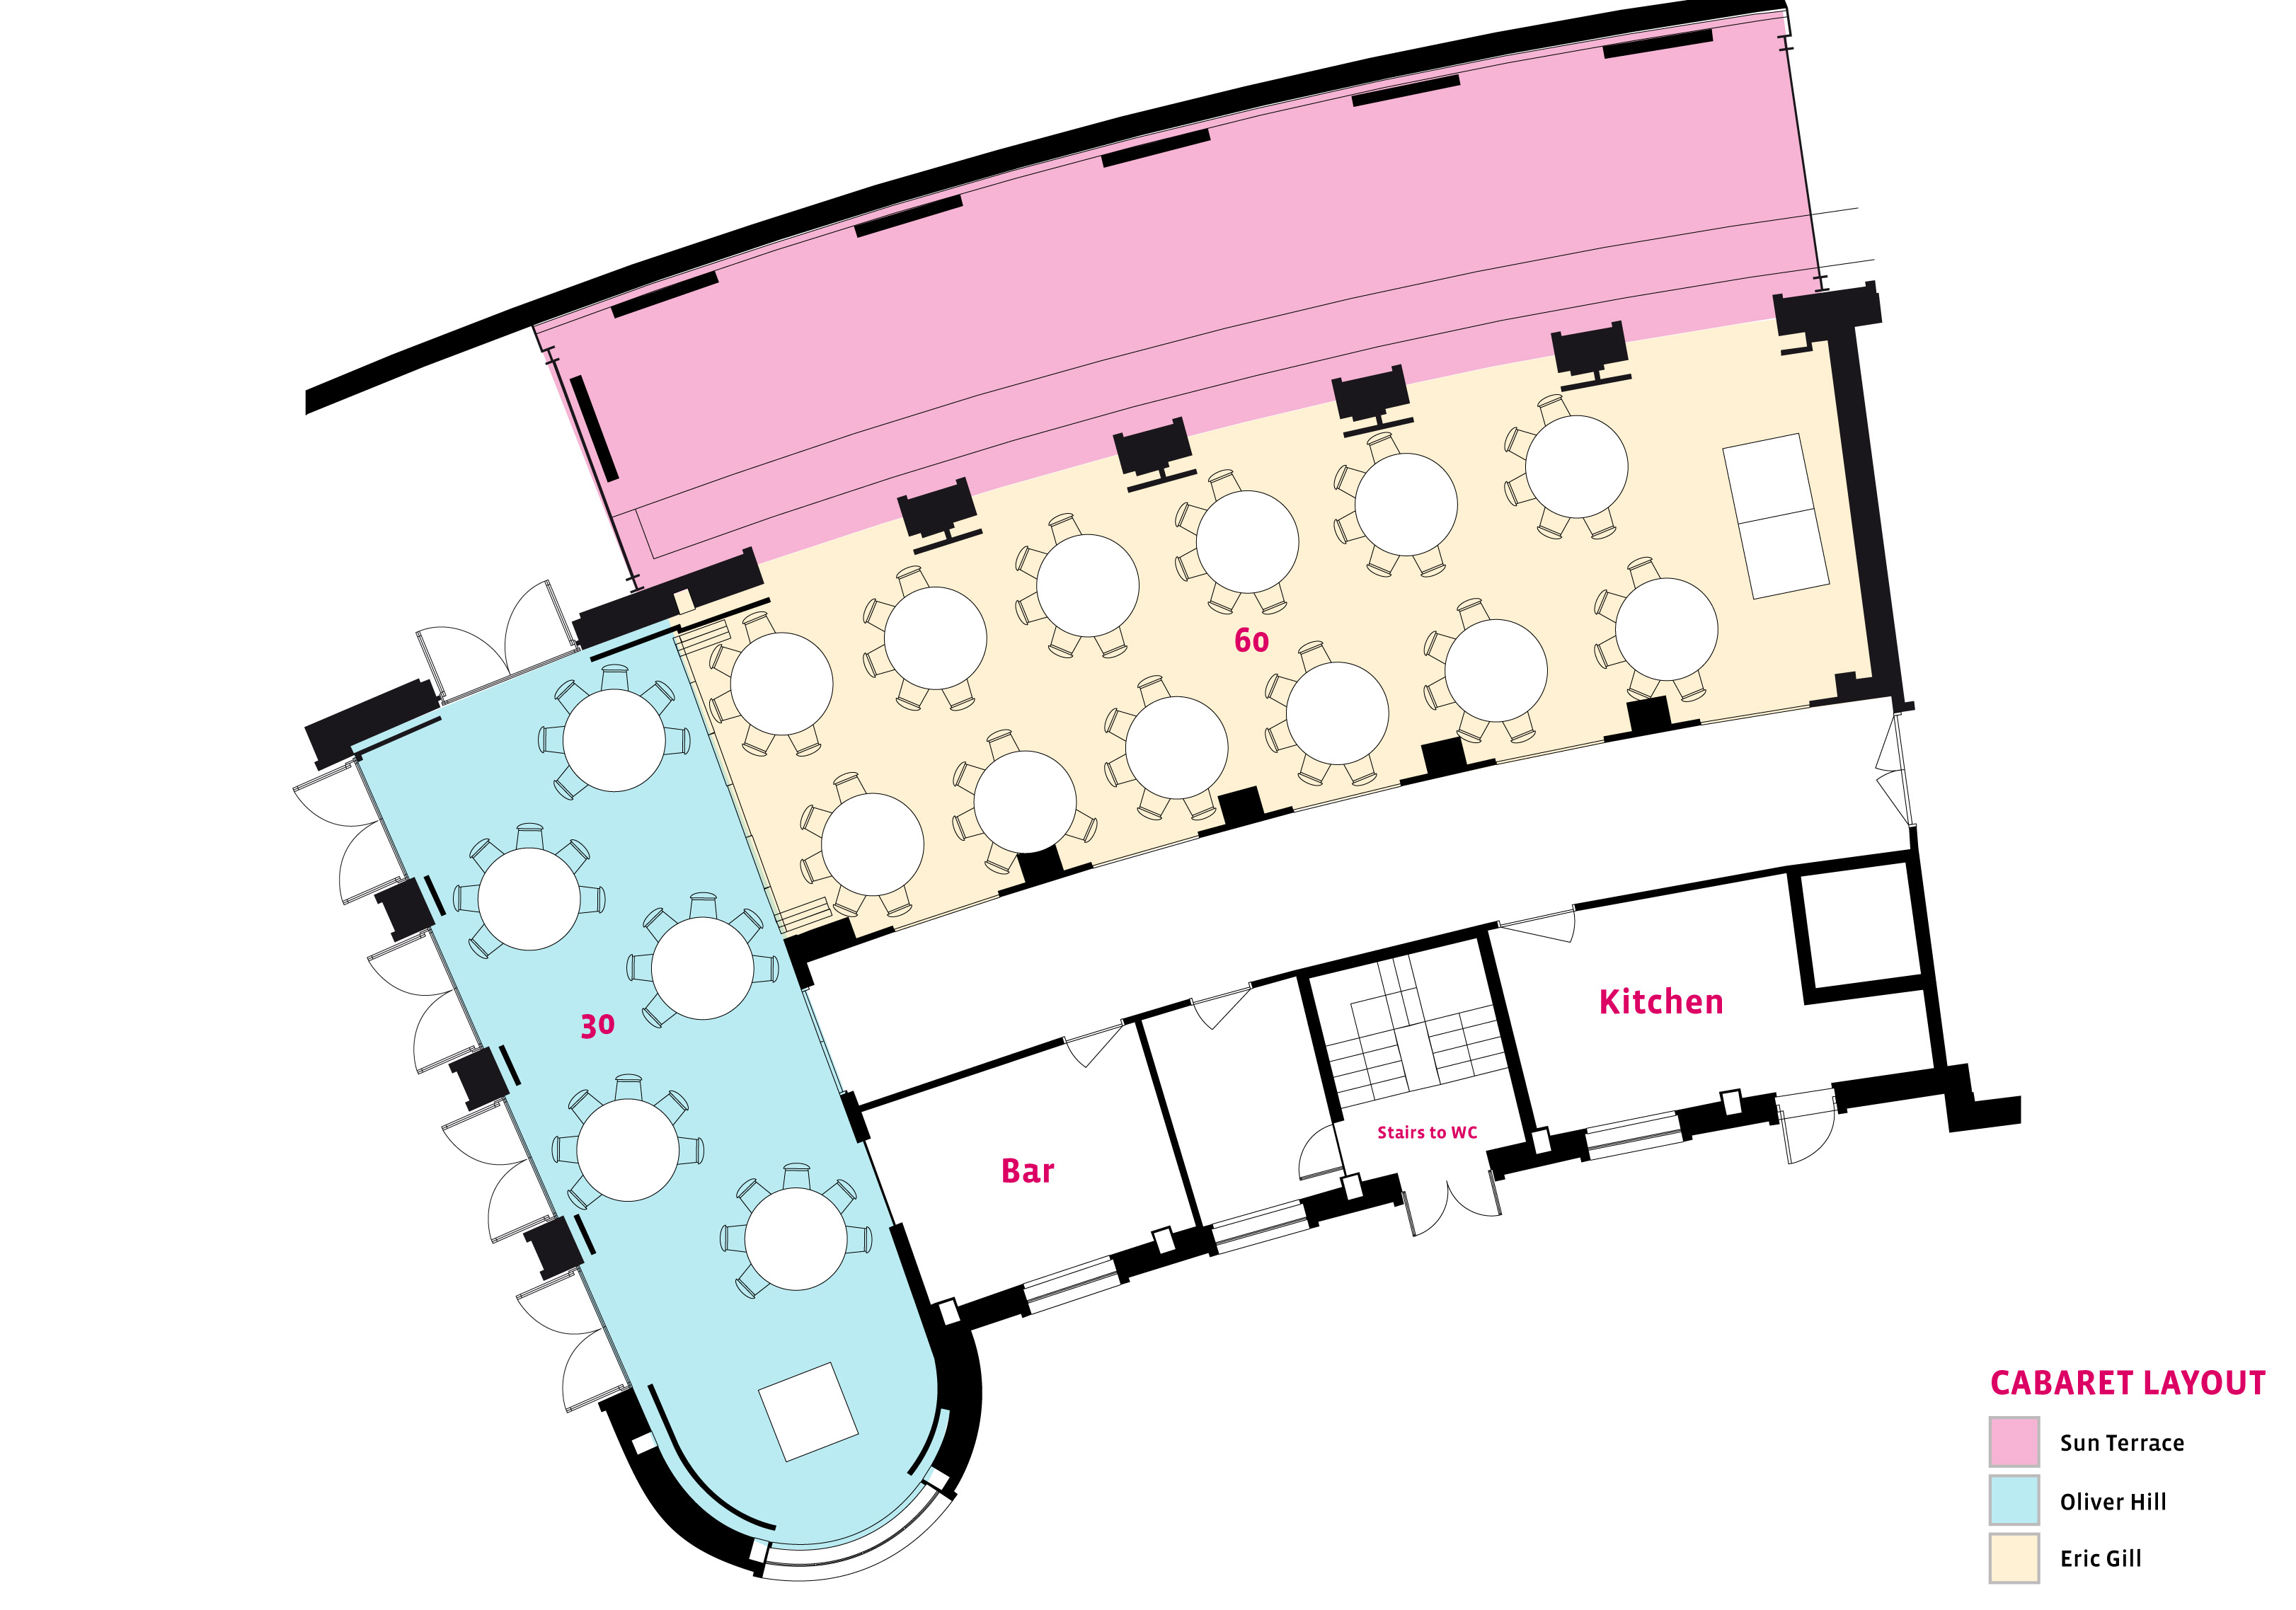 Cabaret Layout -Oliver Hill Conference Room The Midland Hotel Morecambe